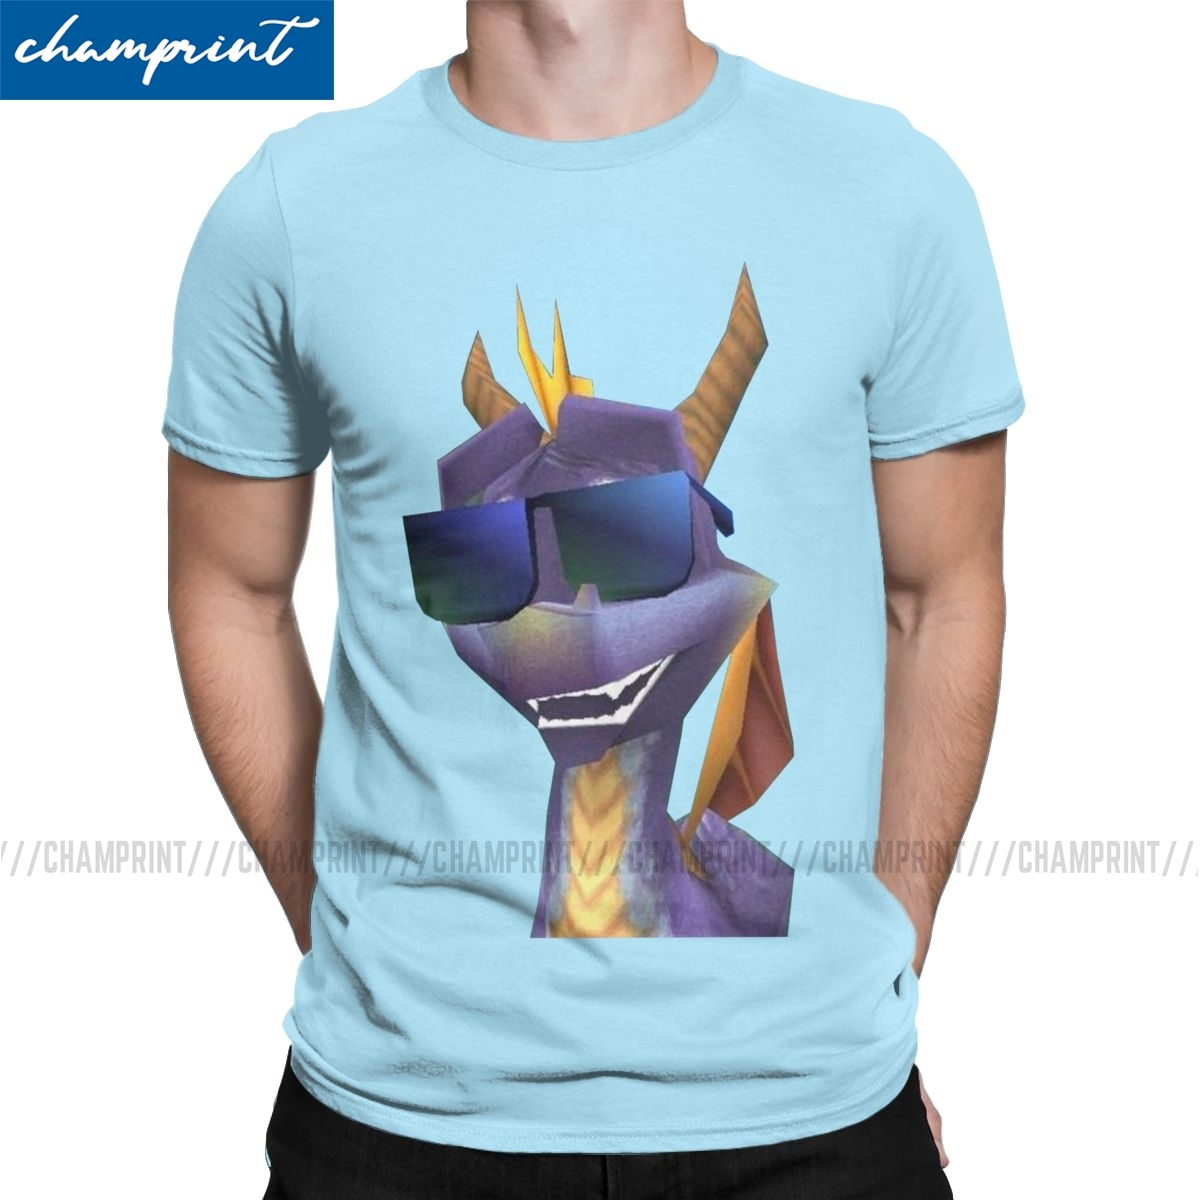 Men Spyro Shades T Shirts Spyro the Dragon Purple Dragon Game Clothes Vintage Short Sleeve Tee Shirt Plus Size T-Shirt image